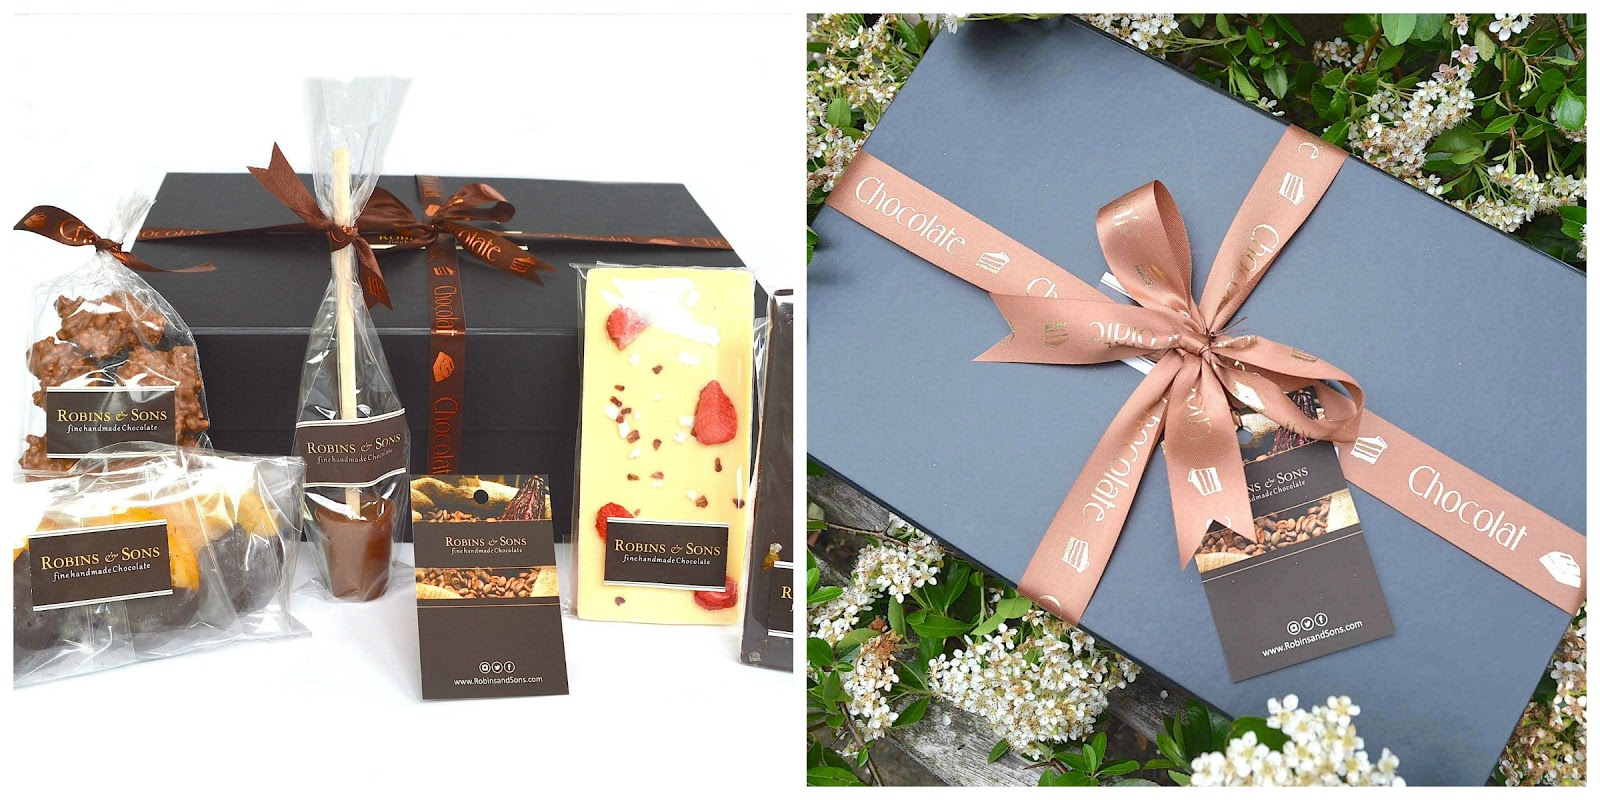 Robins & Sons Small Gift Box Prize Photo